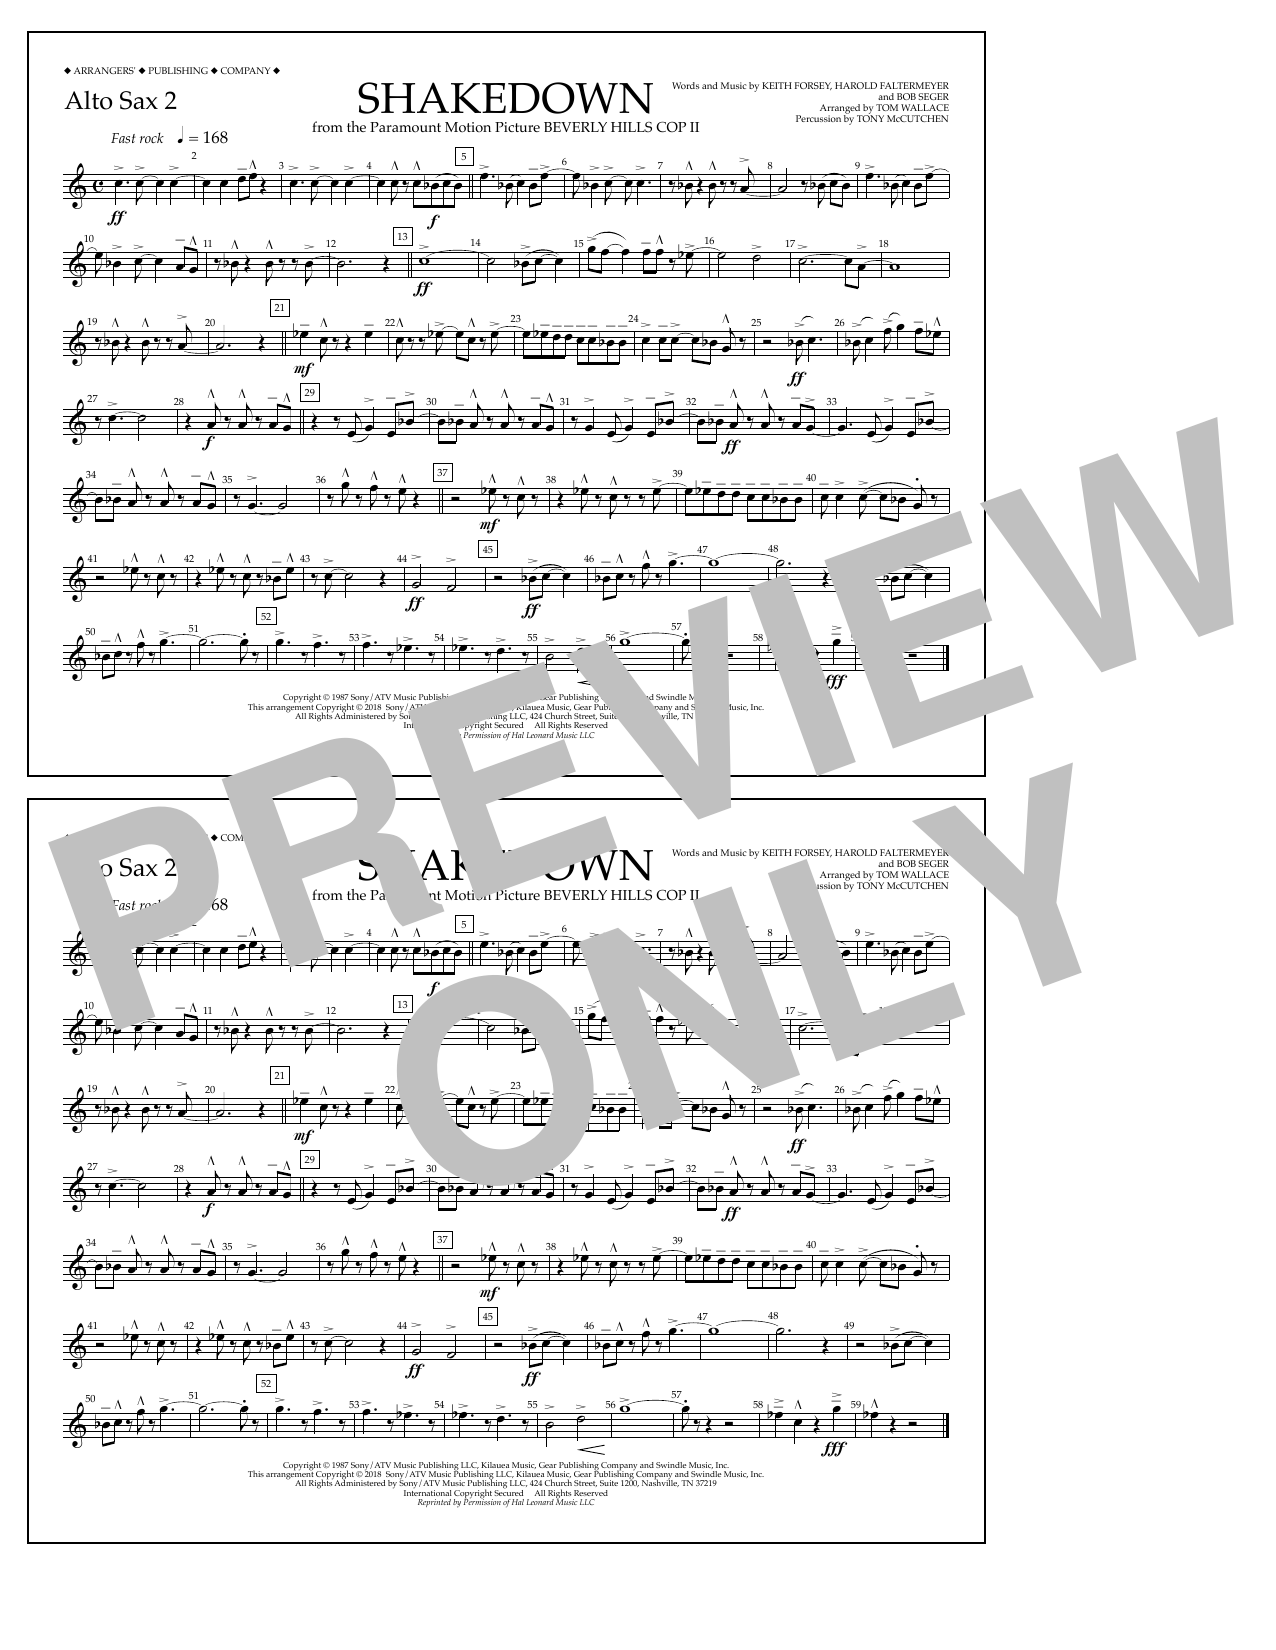 Tom Wallace Shakedown - Alto Sax 2 sheet music notes and chords. Download Printable PDF.